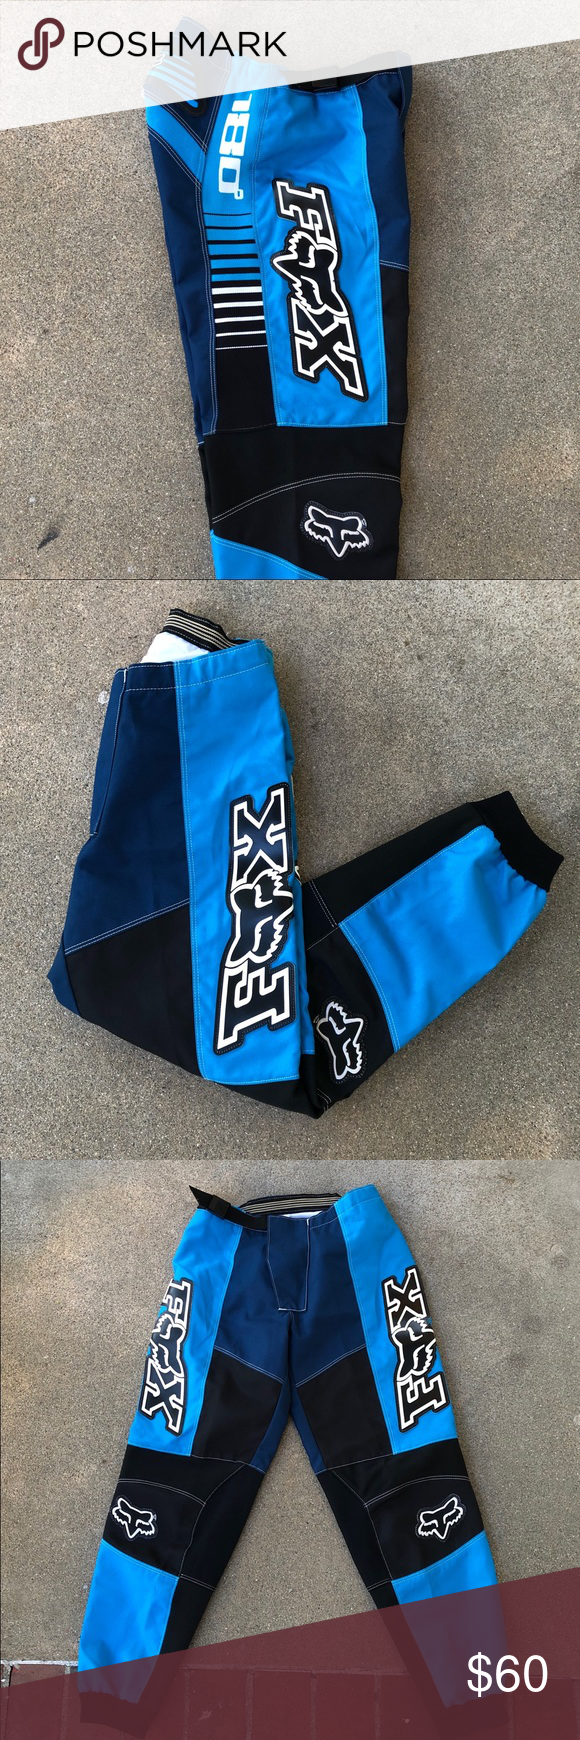 Fox Racing Motocross Pants 180 Sz 30 Fox 180 Motocross Racing Pants Great Blue Color Way Really Pops Fox Spell Out Motocross Pants Tapered Joggers Fox Racing